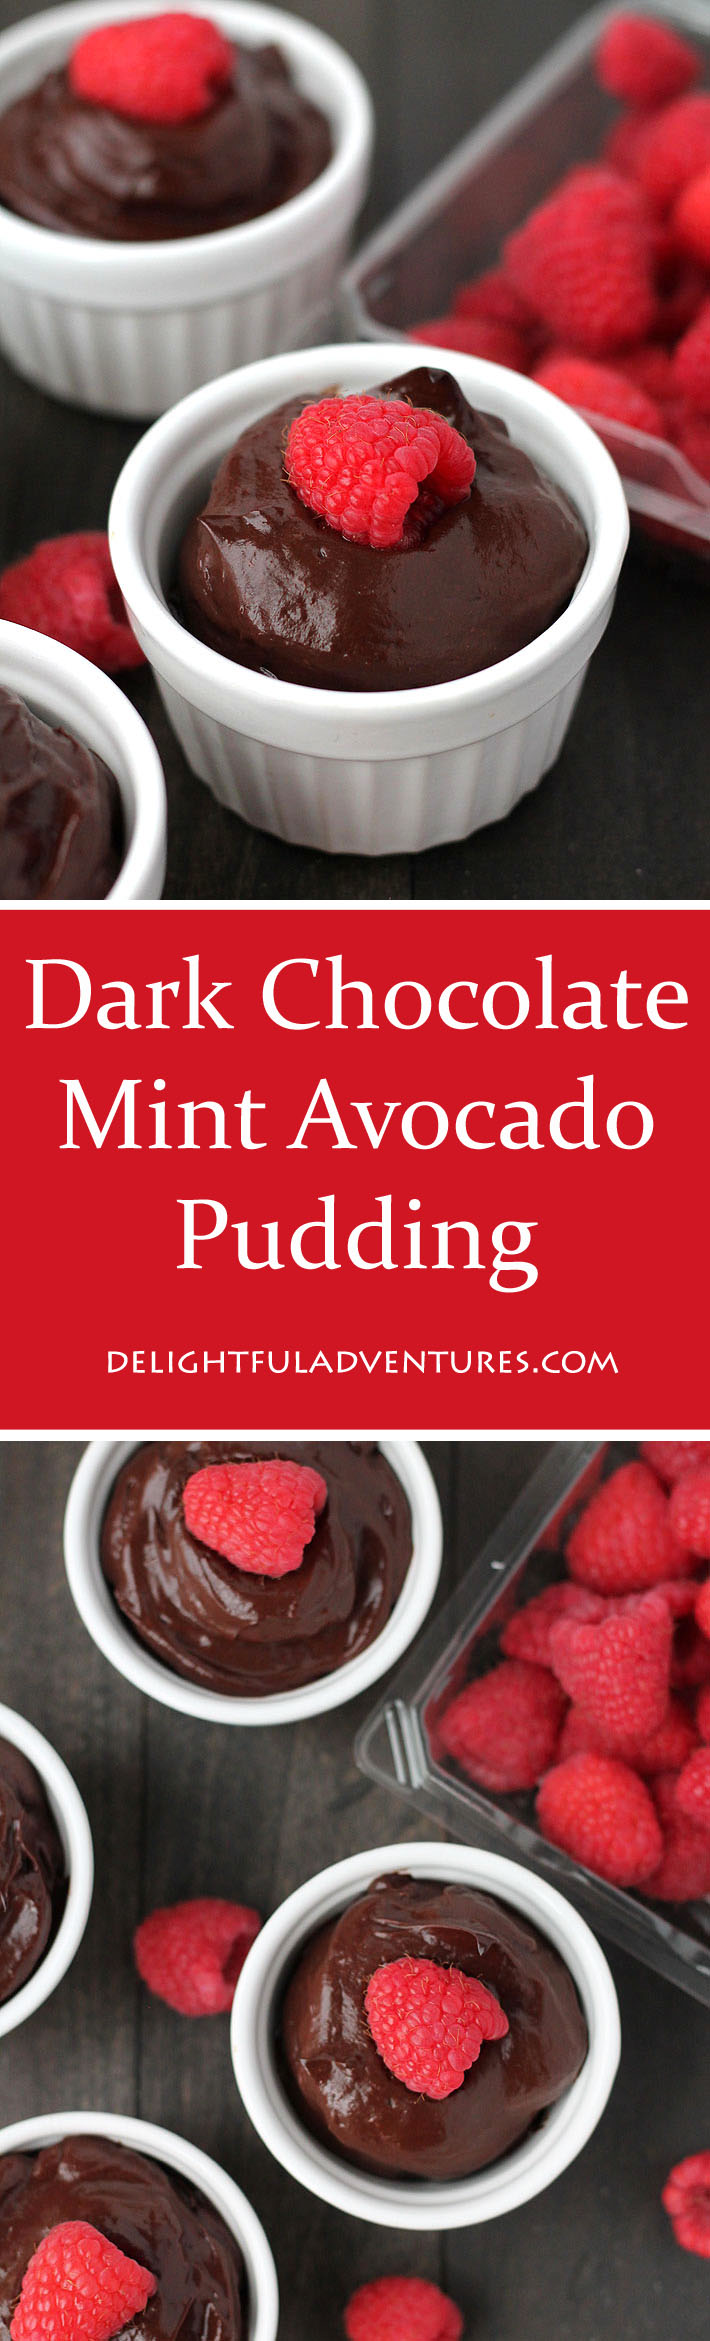 This sweet dark chocolate mint avocado pudding is smooth, chocolaty, and decadent. The best part about it? No one will believe it's made with avocados!